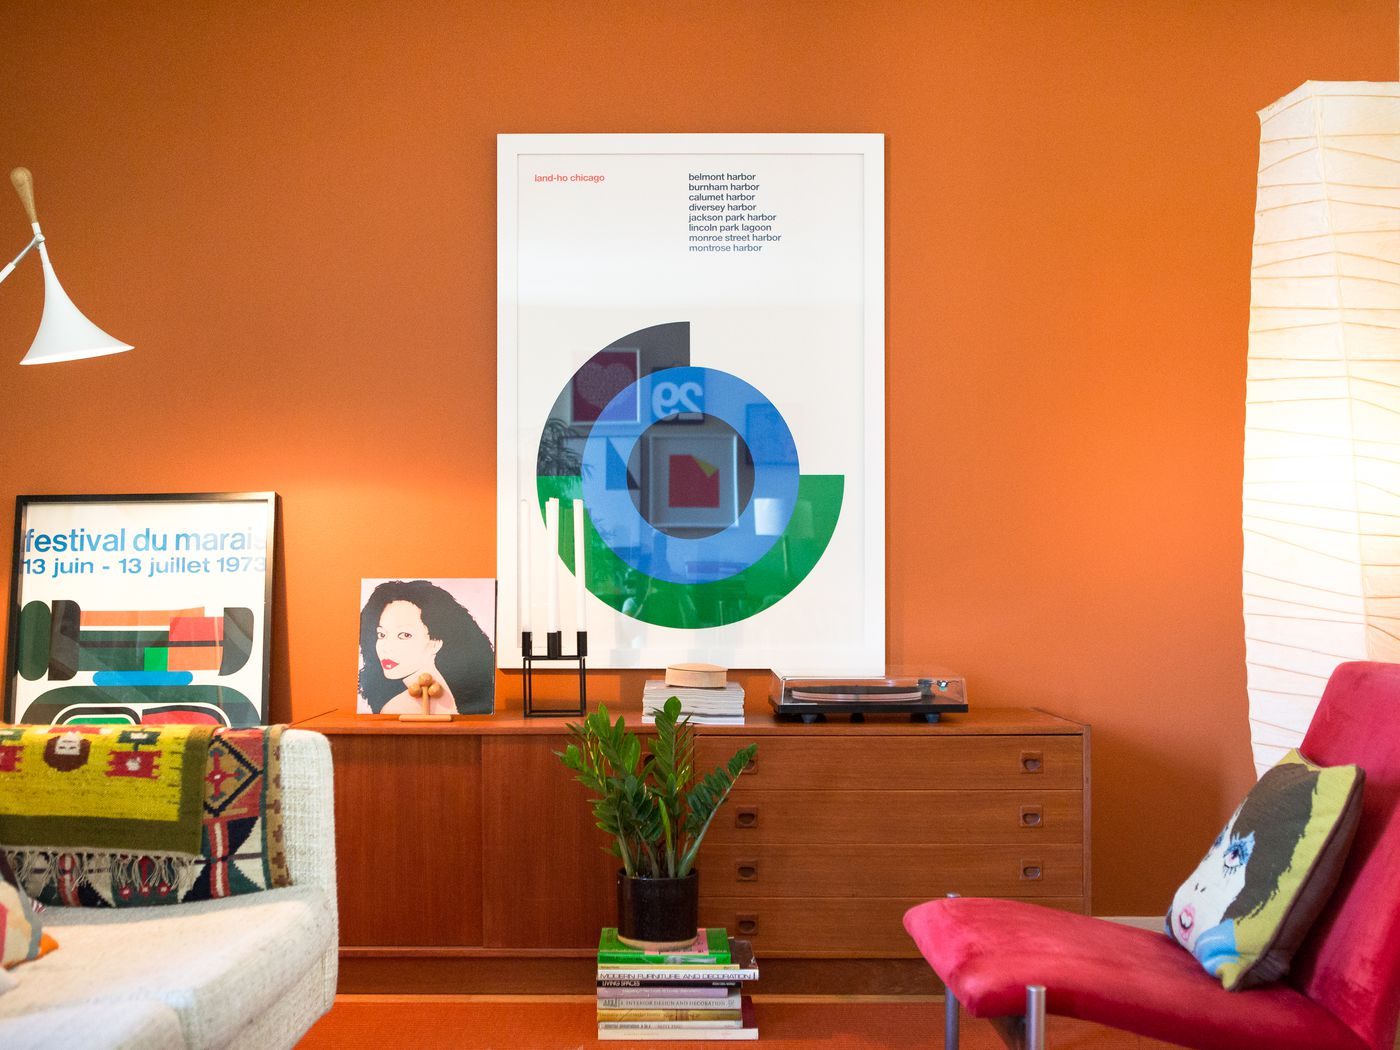 How To Brighten A Dark Room 9 Ideas To Try Curbed